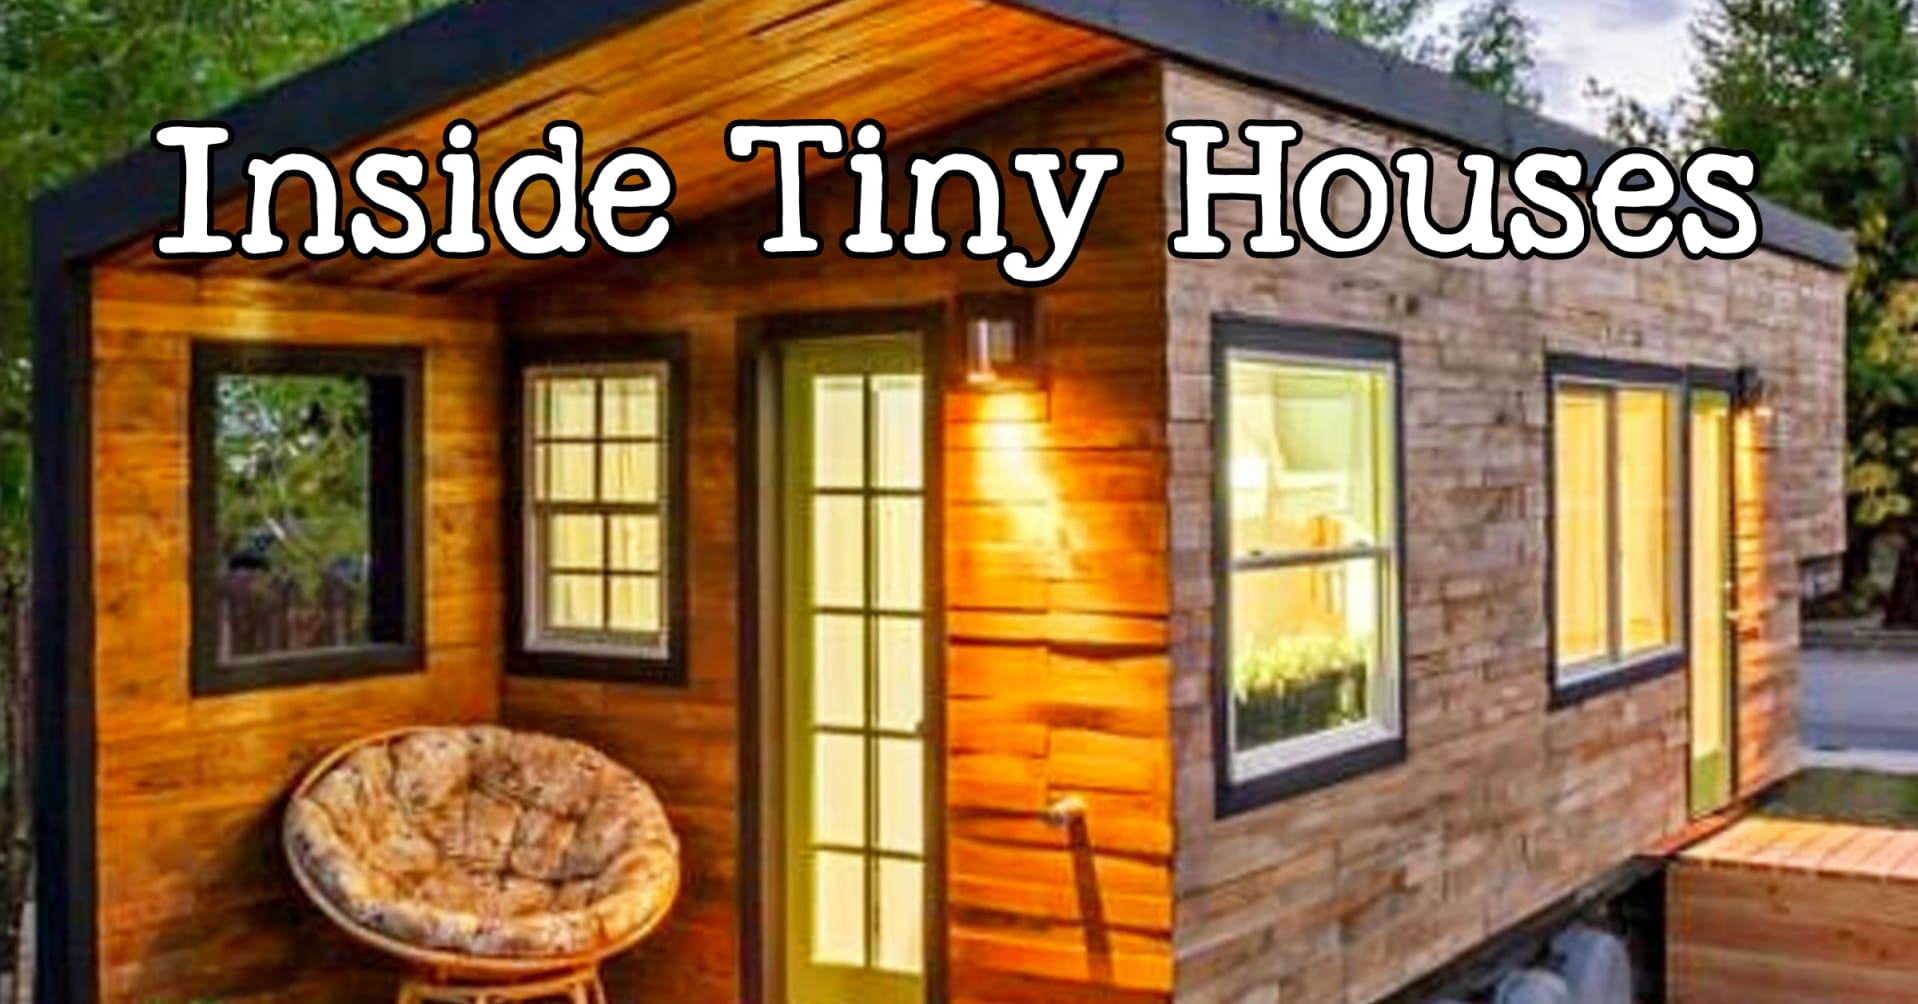 Tiny houses! Love HGTV Tiny Homes? Take a look inside tiny houses in these tiny house interior photos and images (interior AND exterior) These tiny house designs and floor plans are perfect tiny house plans under 1000 sq ft - they're like a tiny apartment on wheels for tiny home communities!